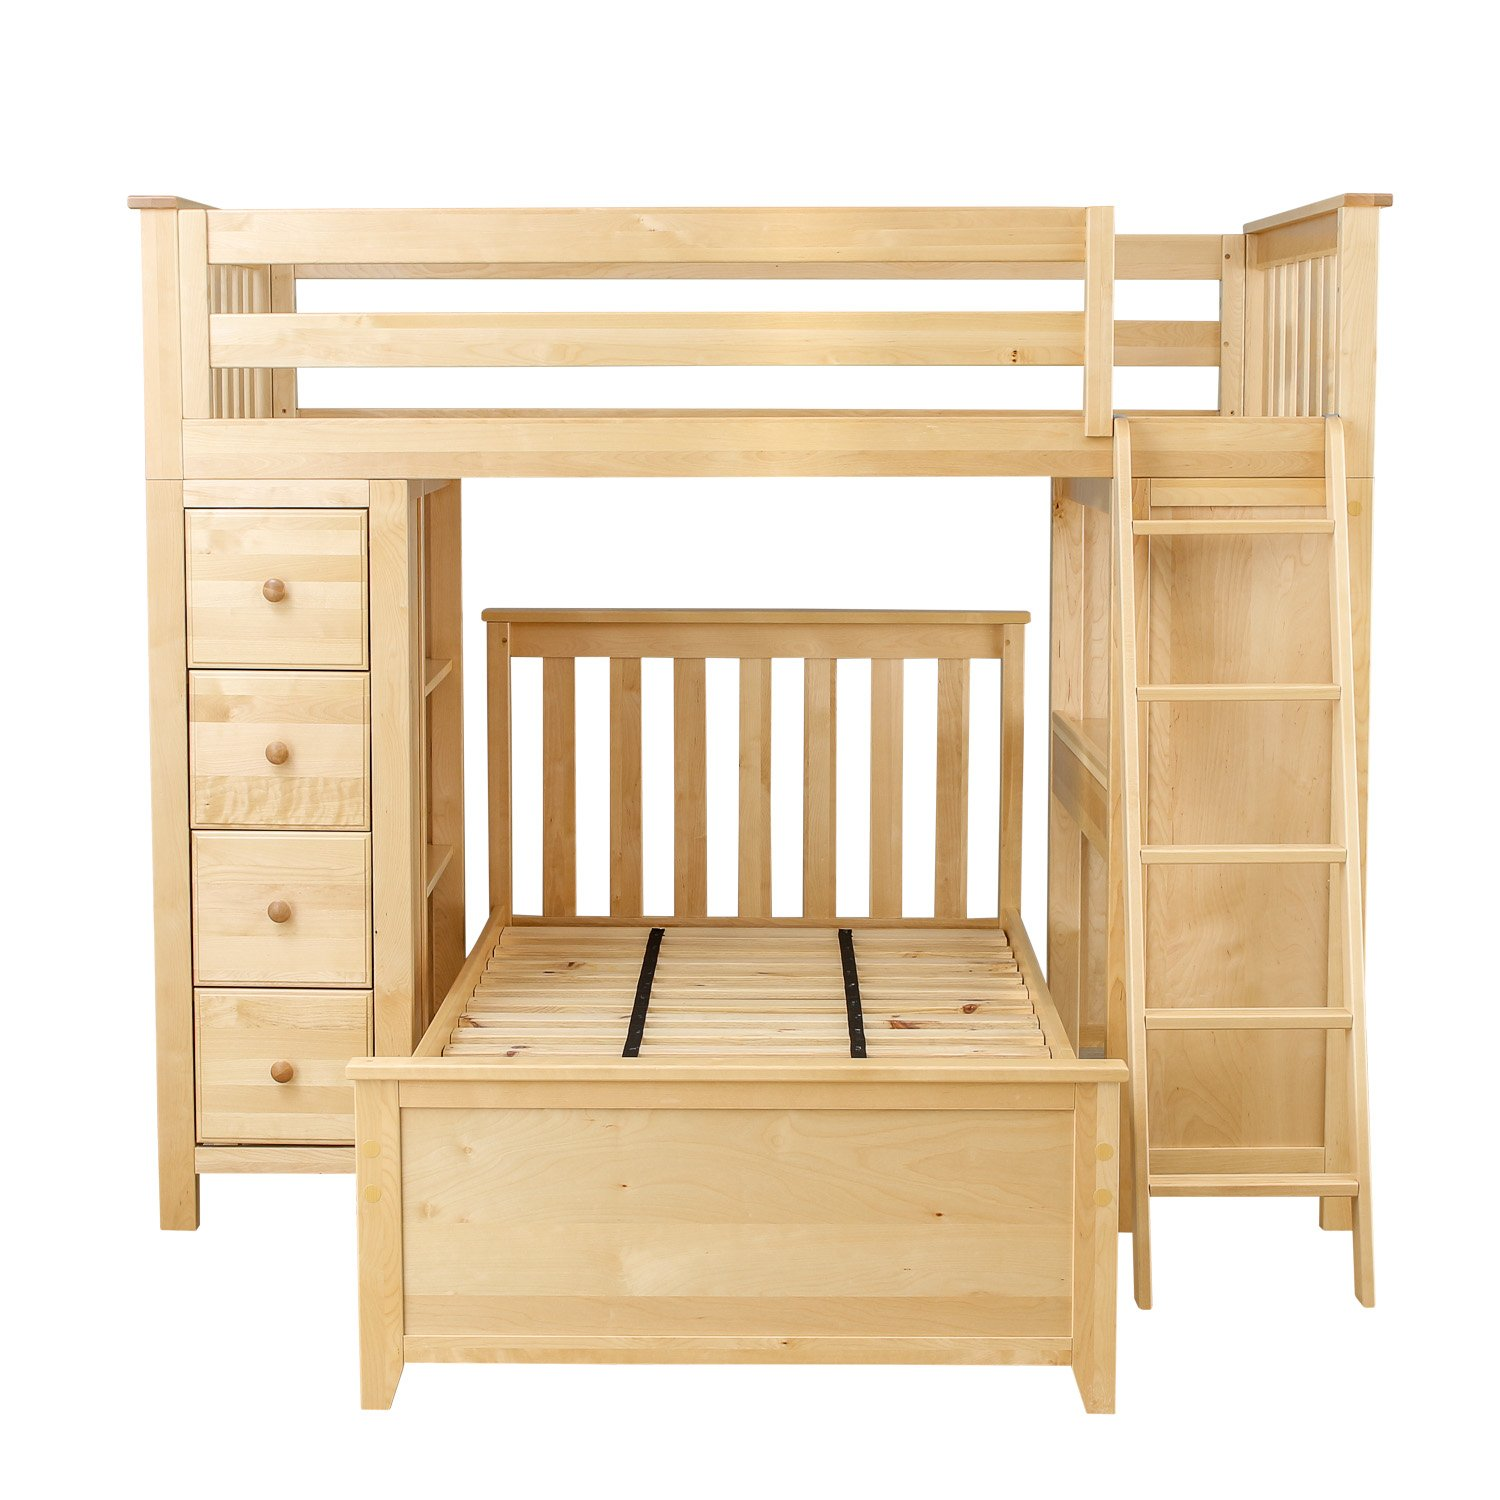 Plank & Beam Combo Loft Bed + Dresser + Desk over Twin Bed, Natural